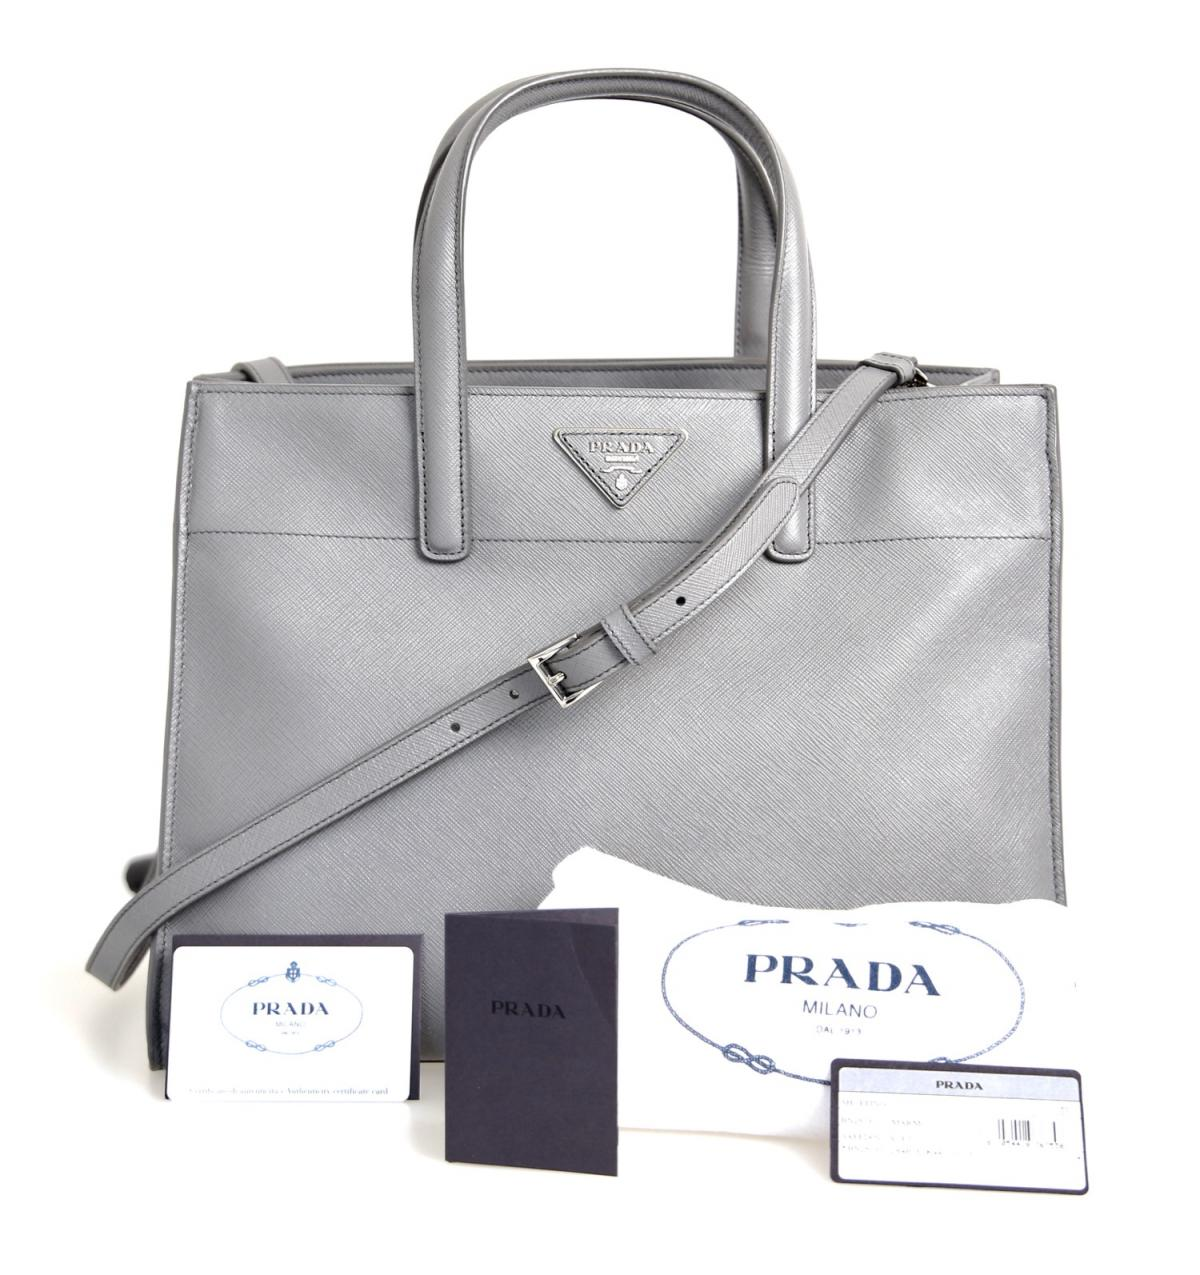 luxus prada saffiano schulter tasche handtasche bn2603. Black Bedroom Furniture Sets. Home Design Ideas